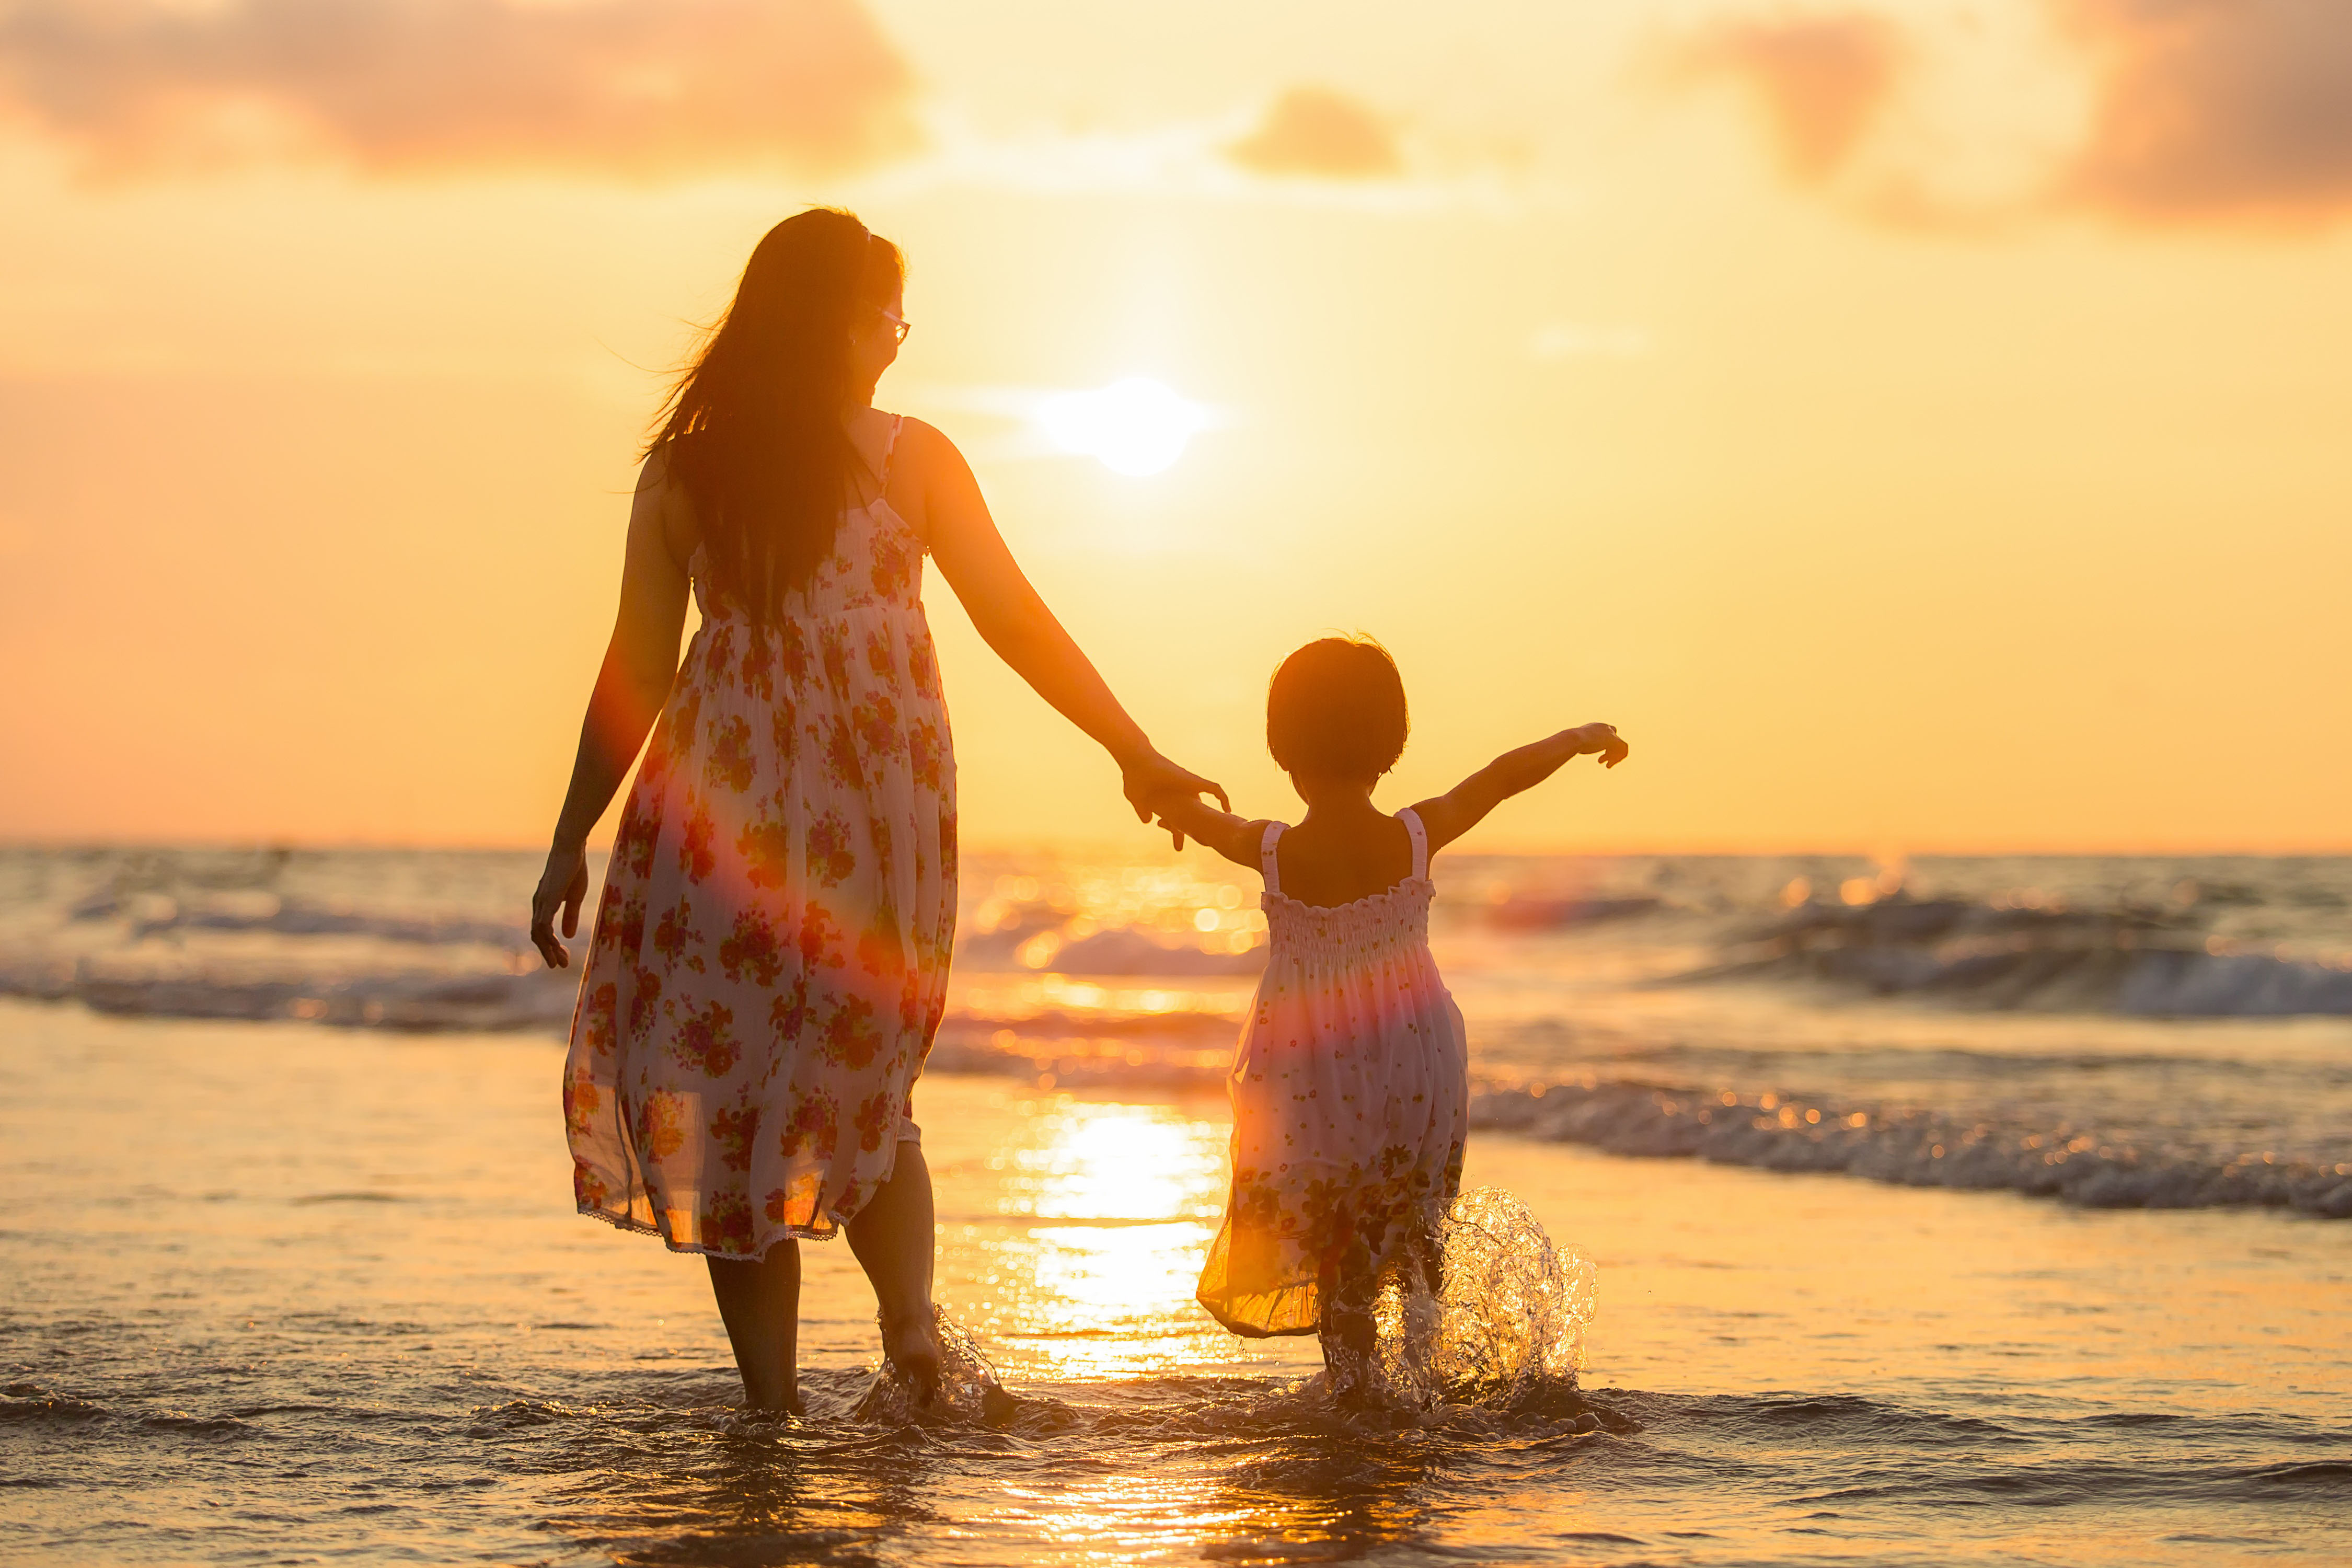 Family love, mother, beach, young, feeling